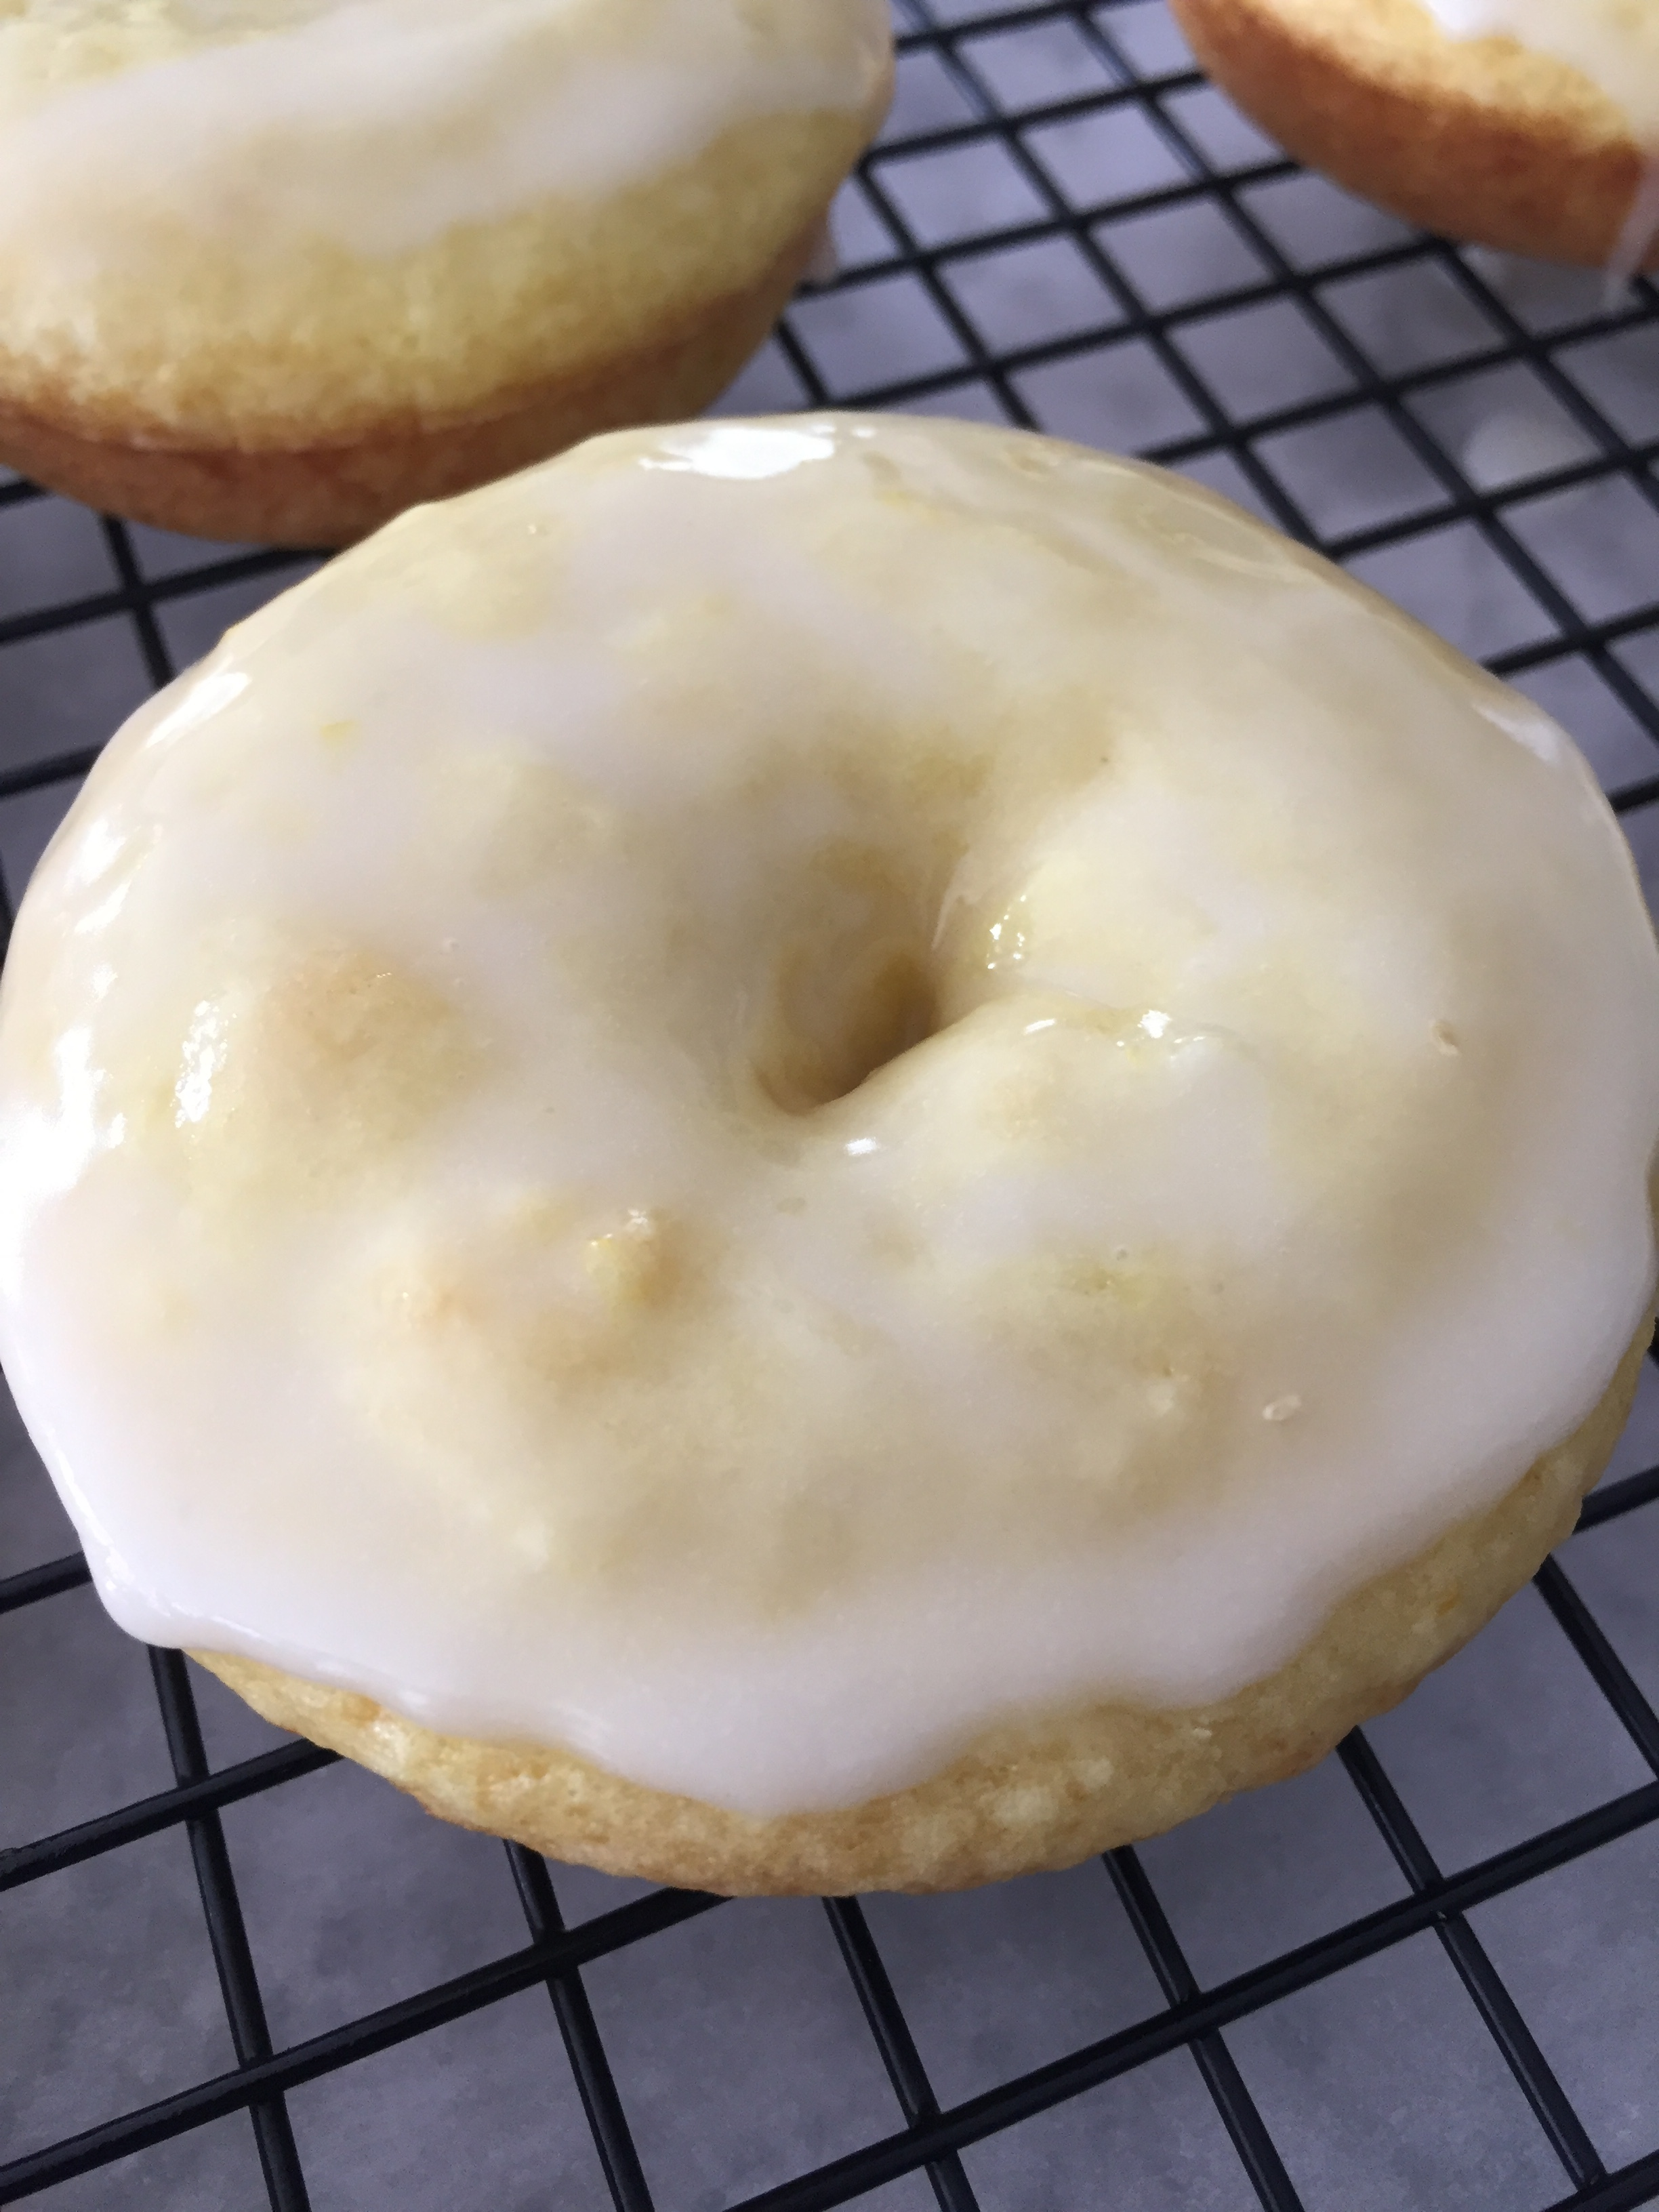 98.2LemonDonuts5.JPG